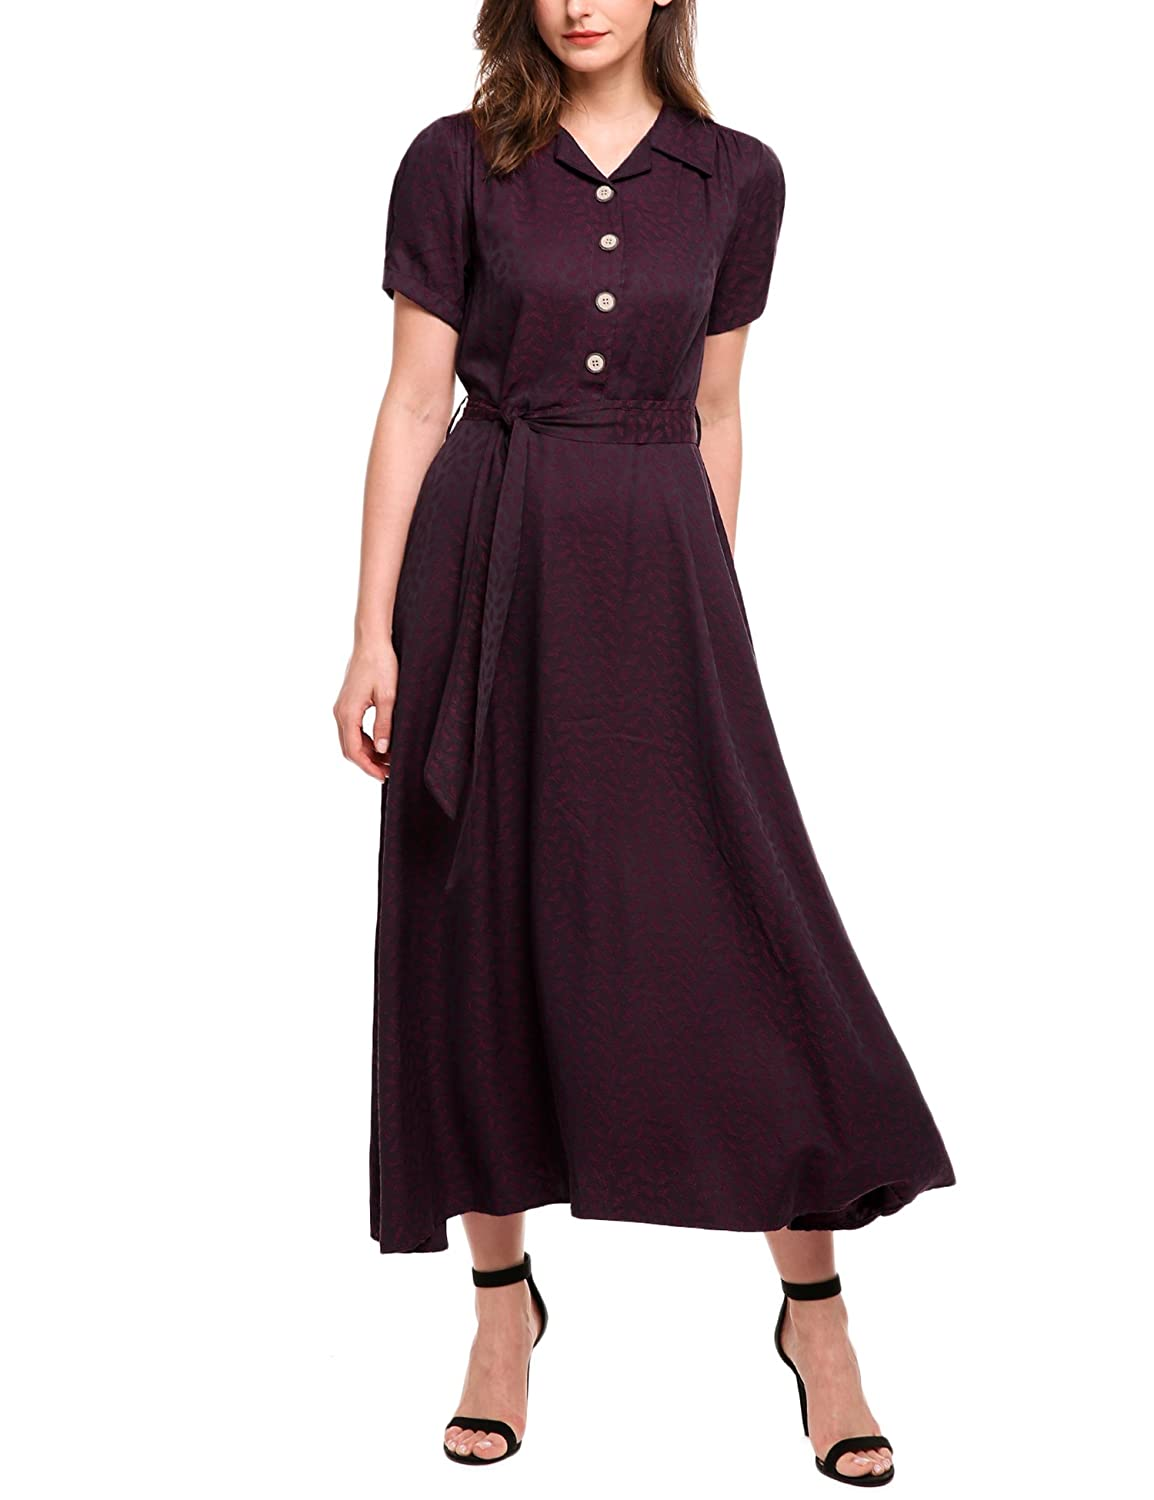 1940s Dresses | 40s Dress, Swing Dress ACEVOG Women Vintage Style Turn Down Collar Short Sleeve High Waist Maxi Swing Dress with Belt $38.99 AT vintagedancer.com